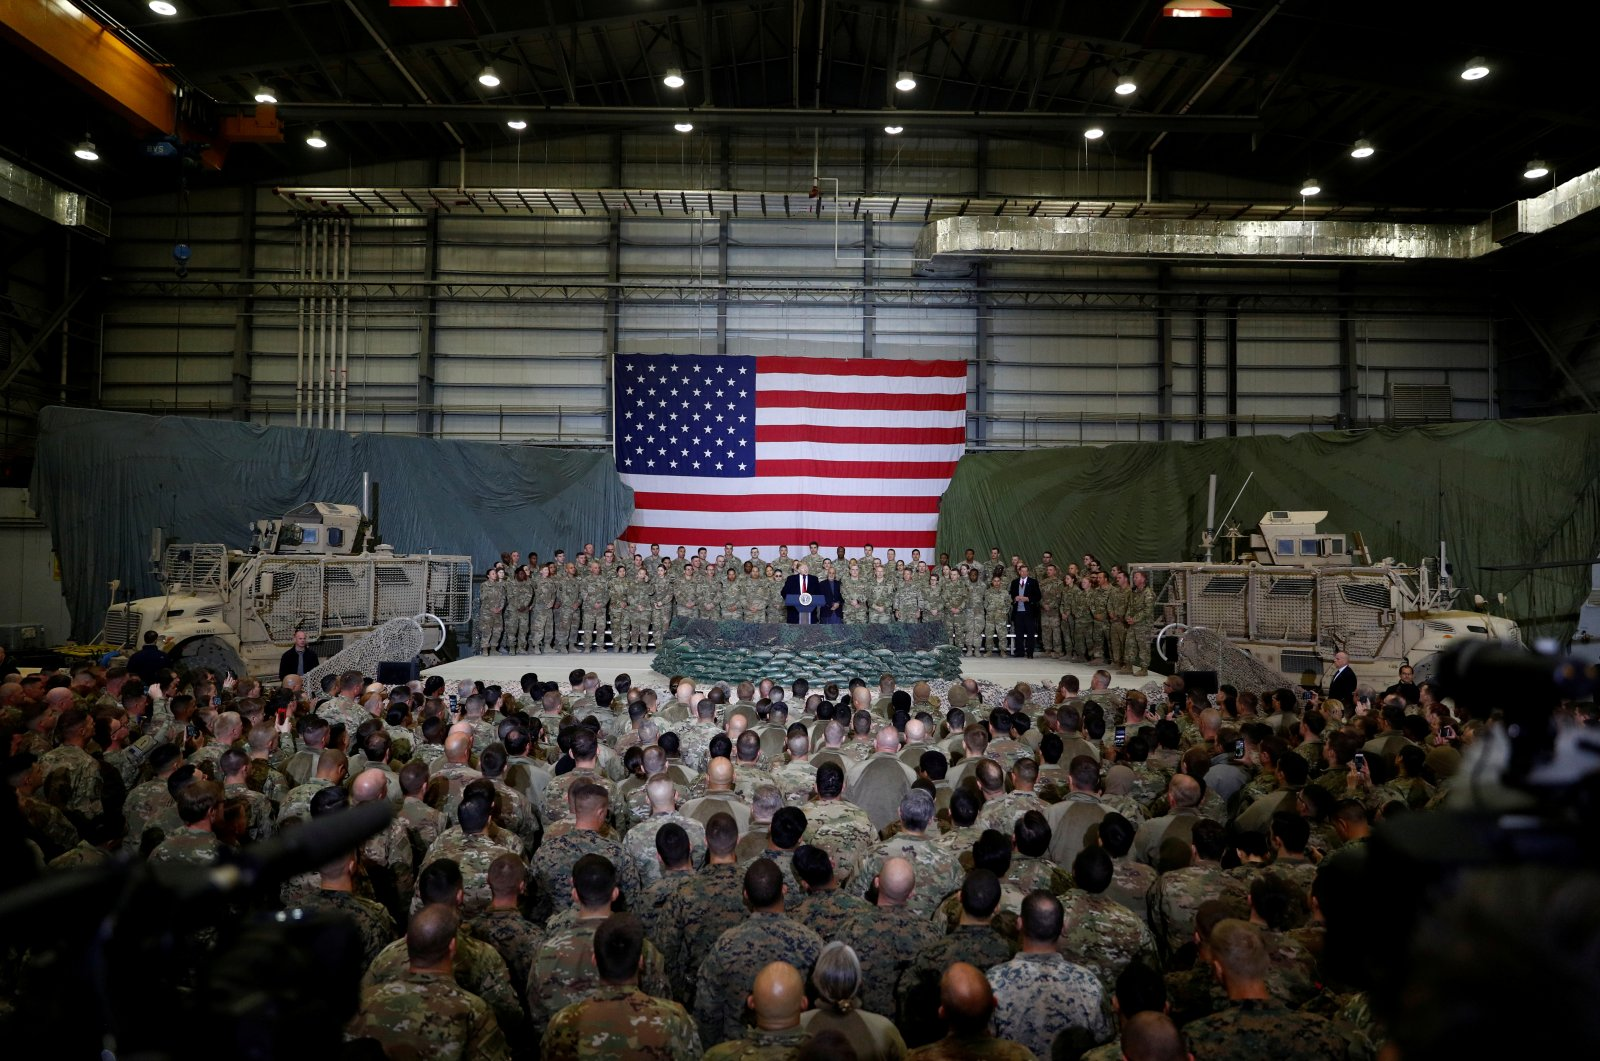 U.S. President Donald Trump delivers remarks to U.S. troops during an unannounced visit to Bagram Air Base, Afghanistan, Nov. 28, 2019. (Reuters File Photo)